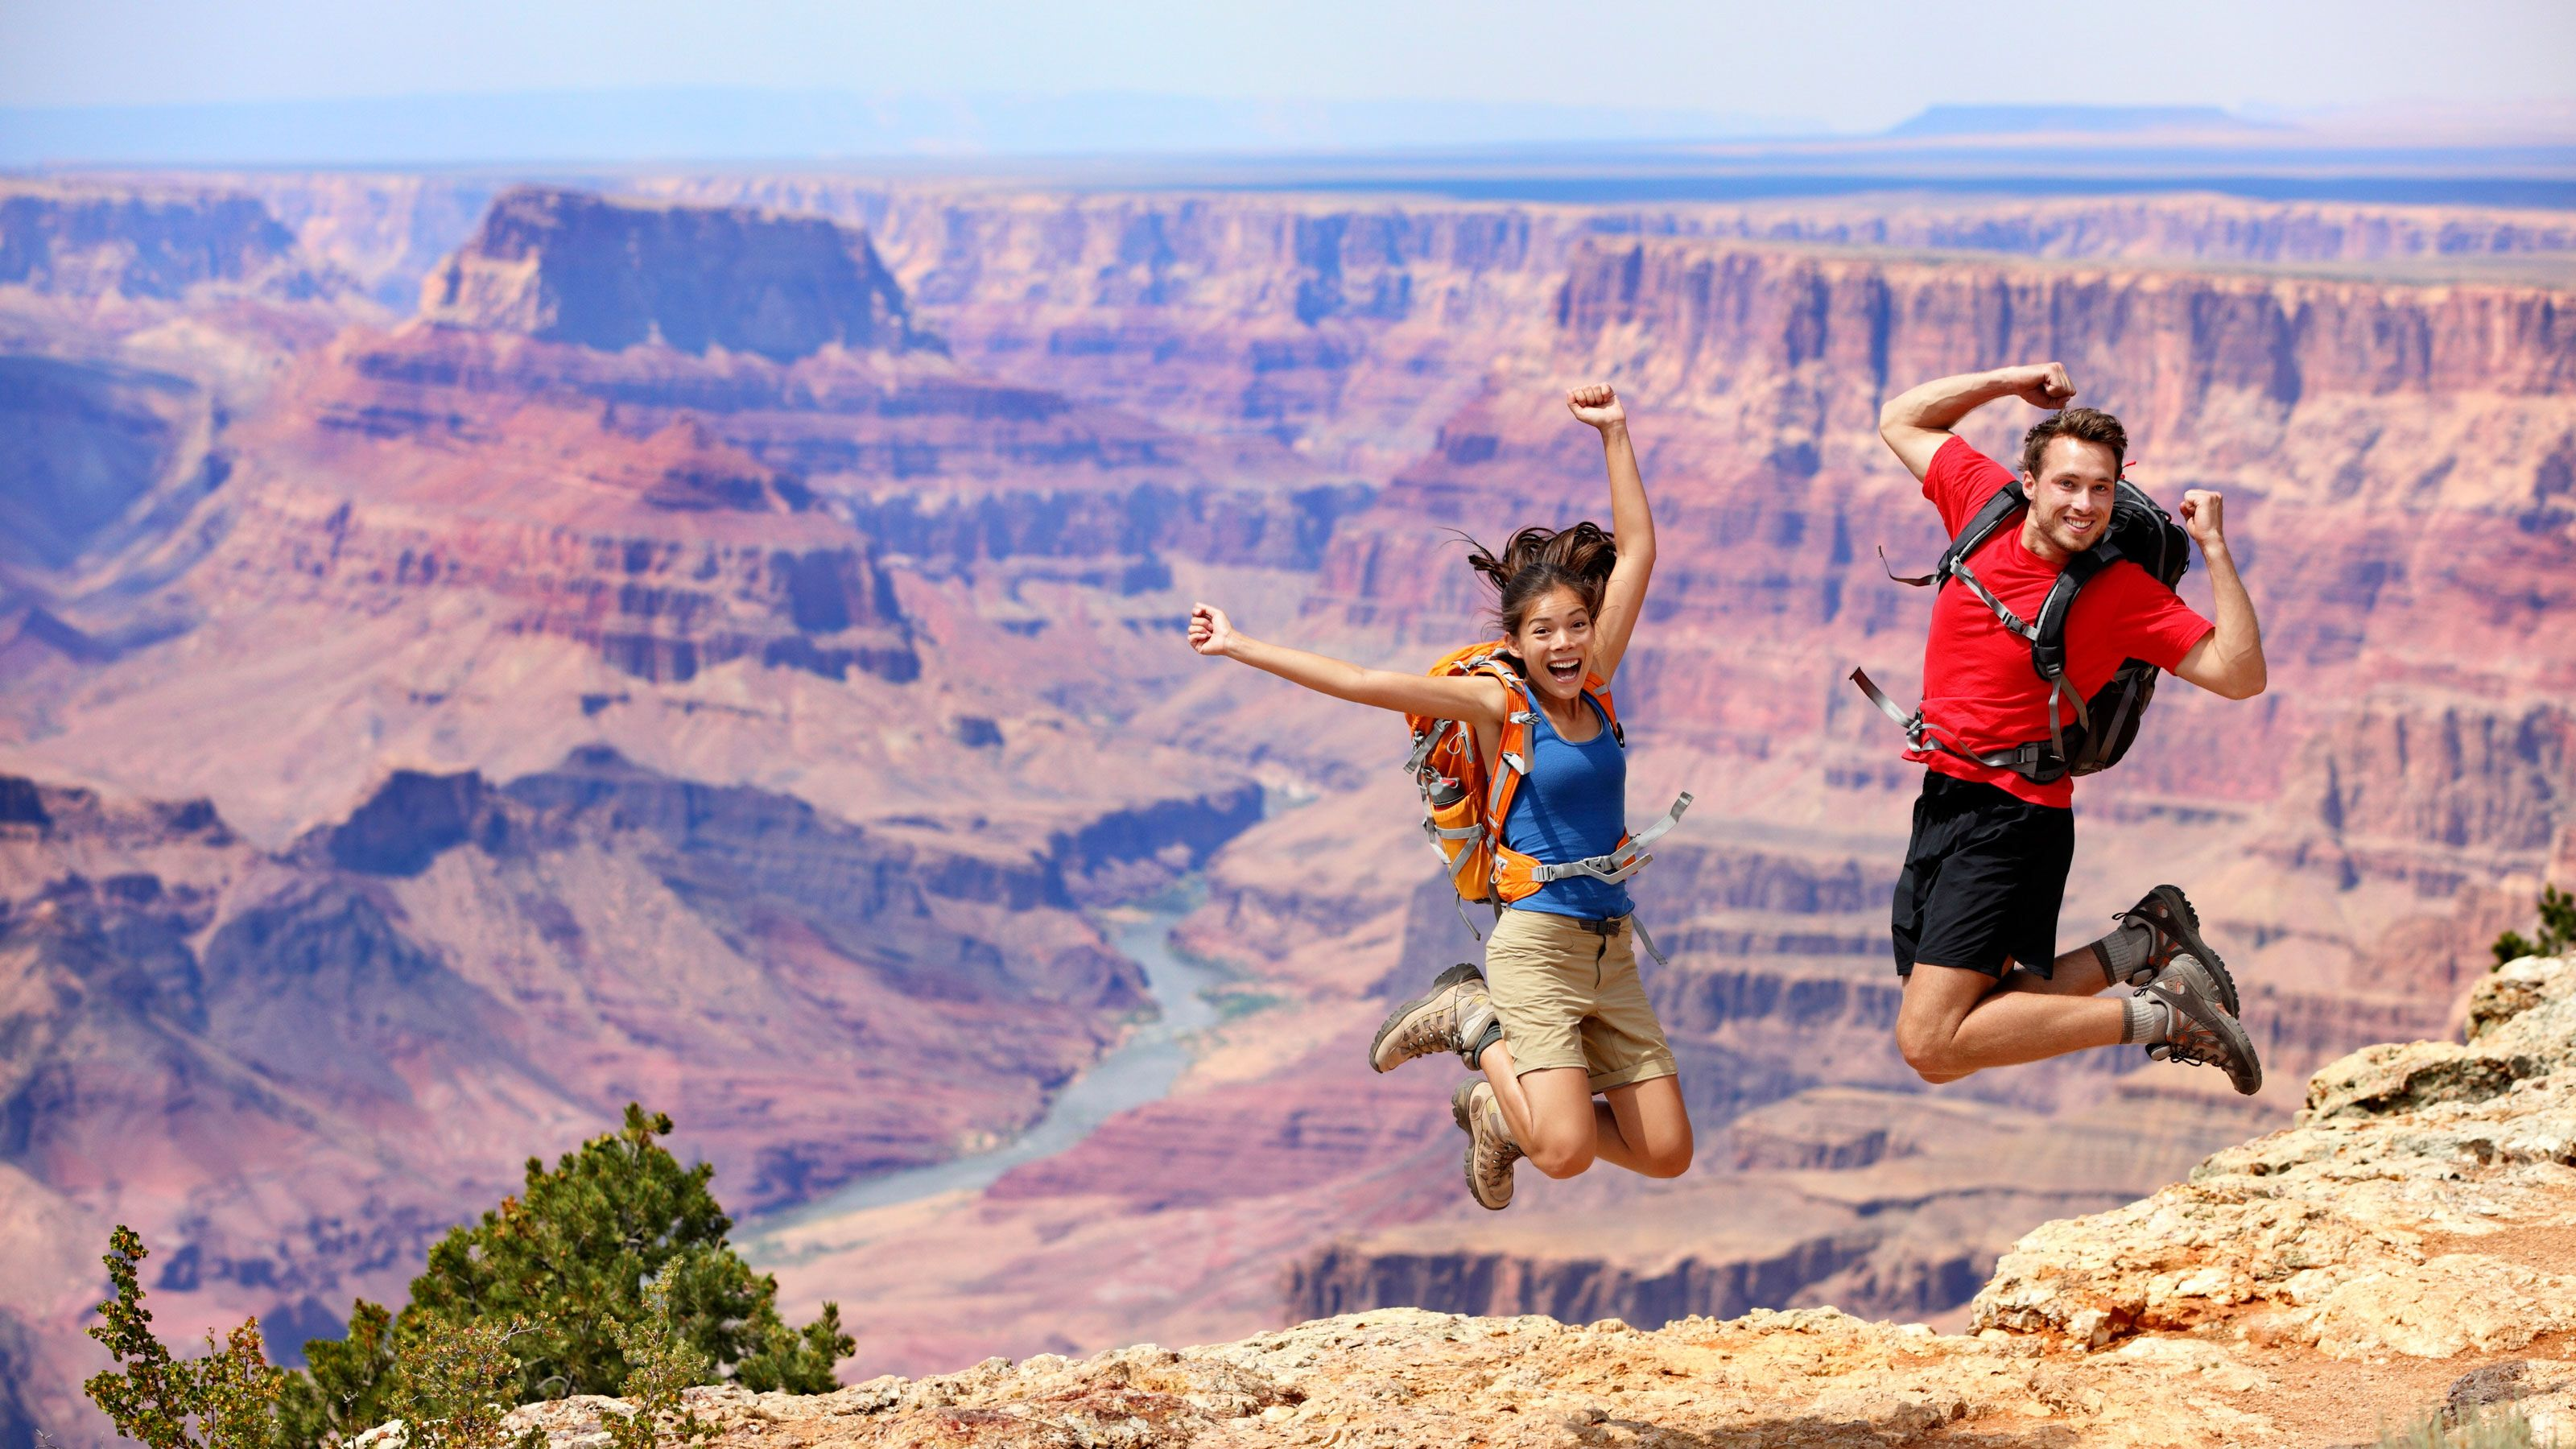 Couple jumping for joy while basking in the majestic views of the Grand Canyon